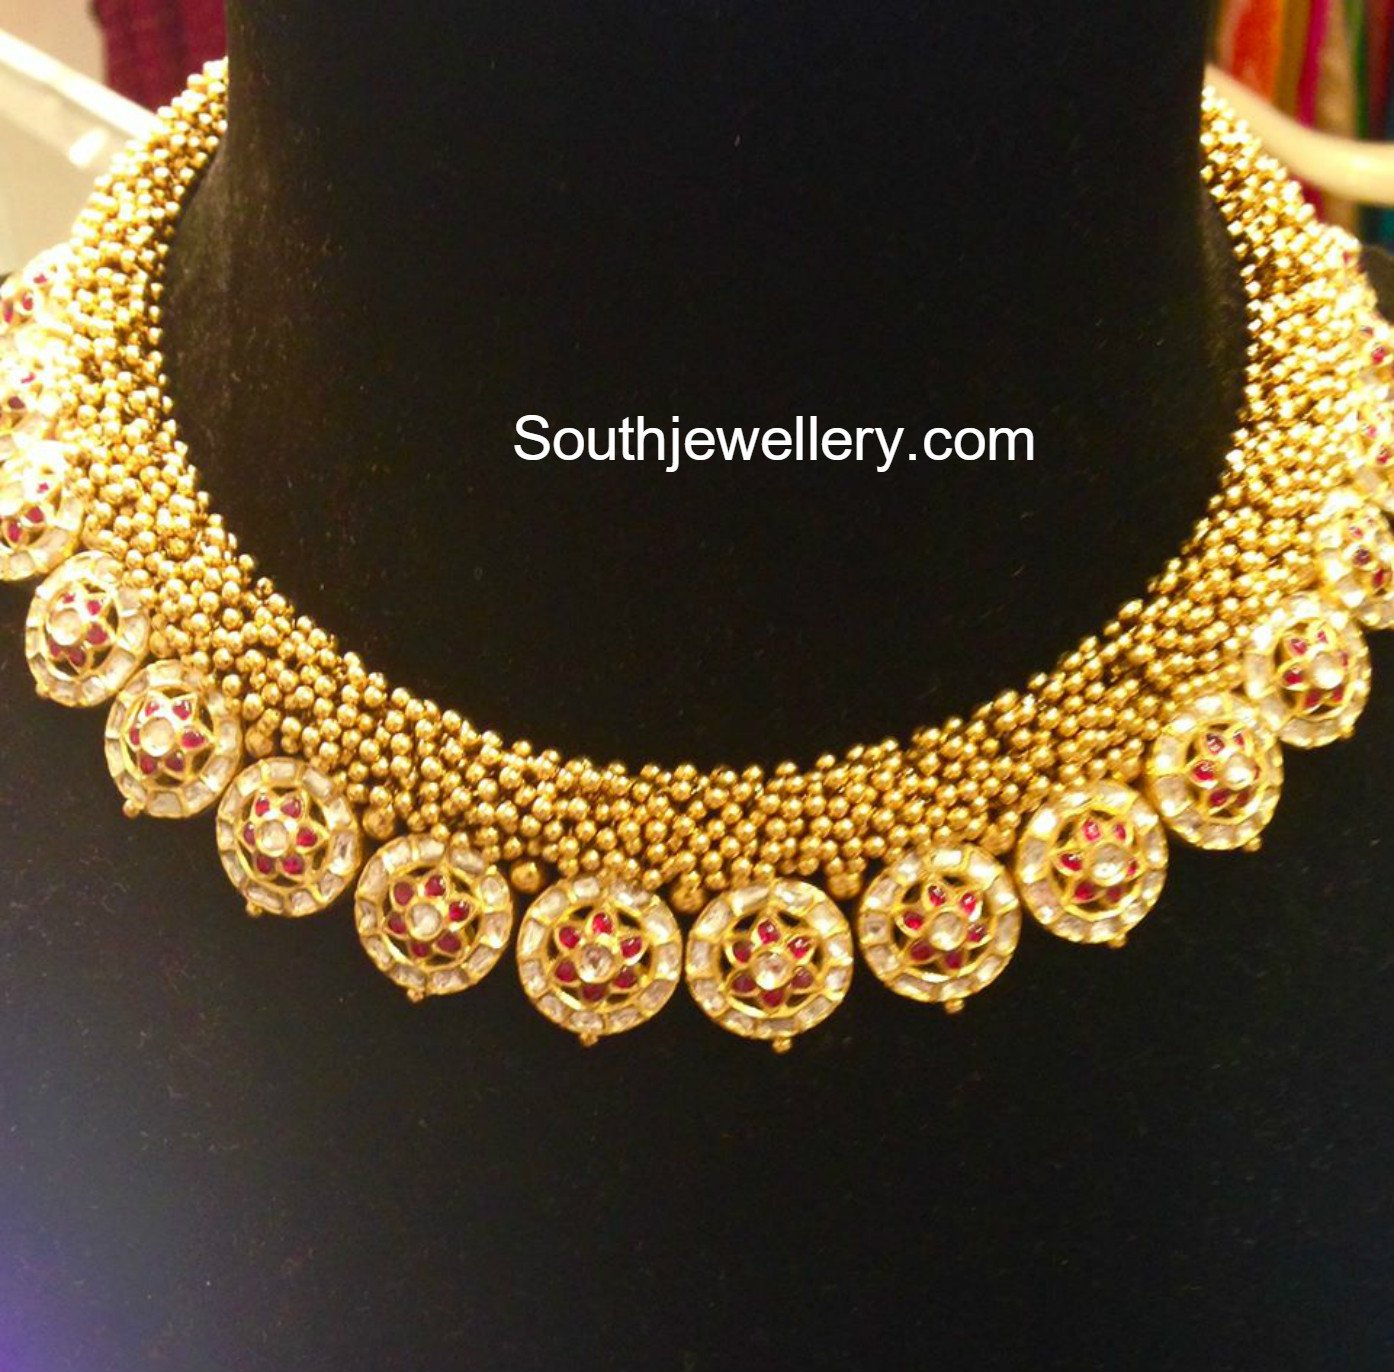 Antique Gold Necklace - Jewellery Designs